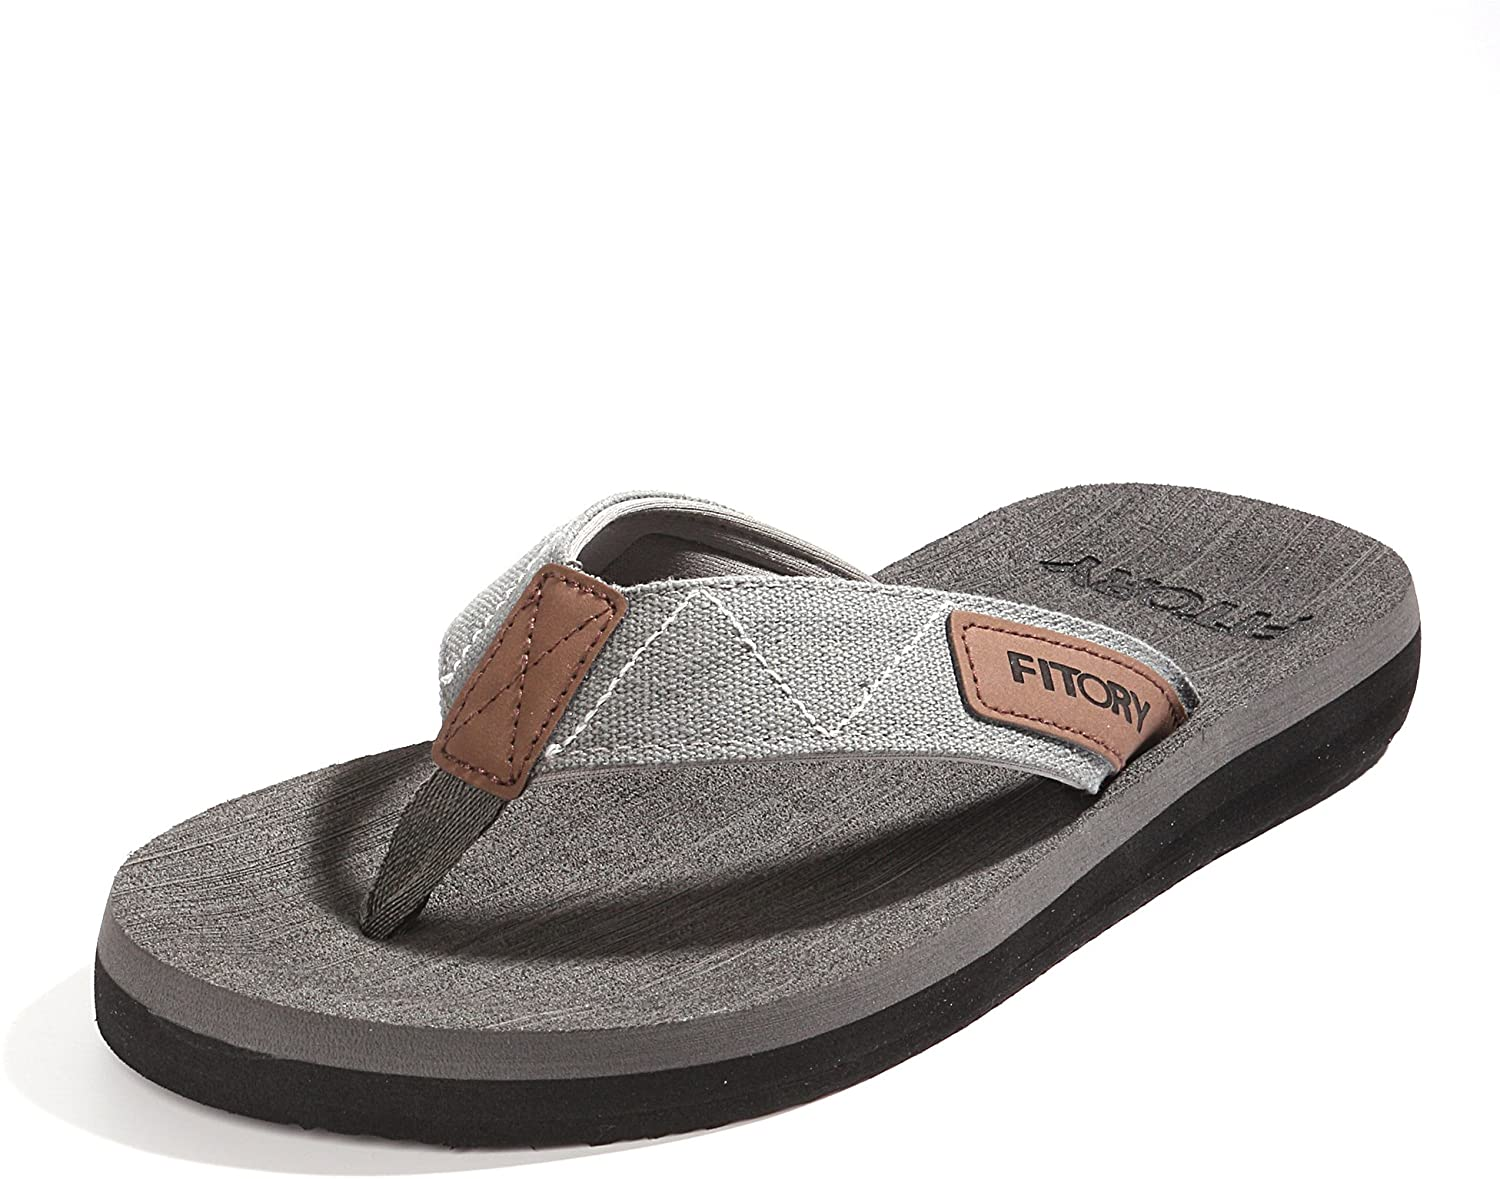 FITORY Men's Flip-Flops, Thongs Sandals Comfort Slippers for Beach Size 7-13